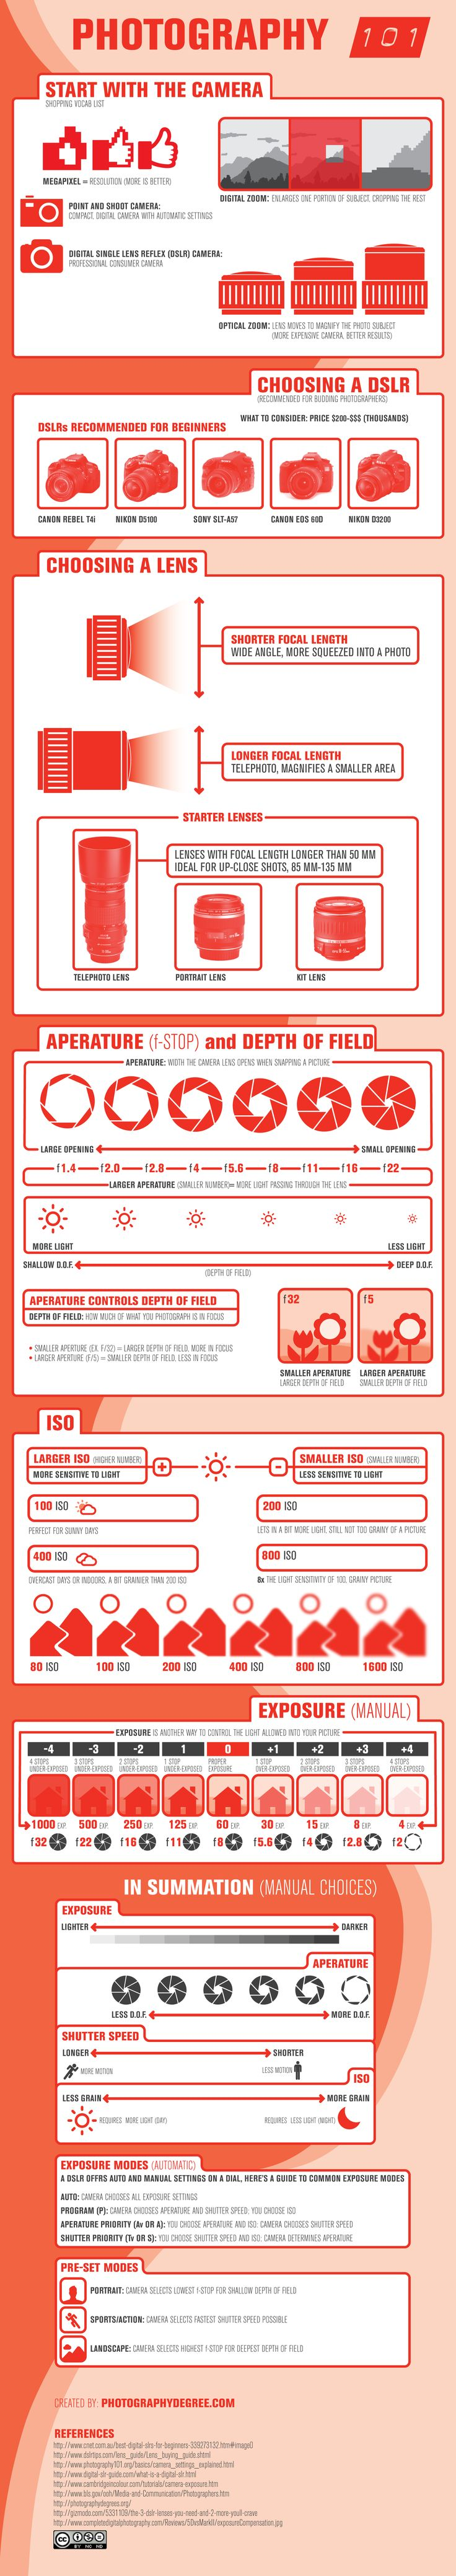 A Beginner's Guide To Photography [infographic] - choosing the right camera, lens, and basic settings to play around with